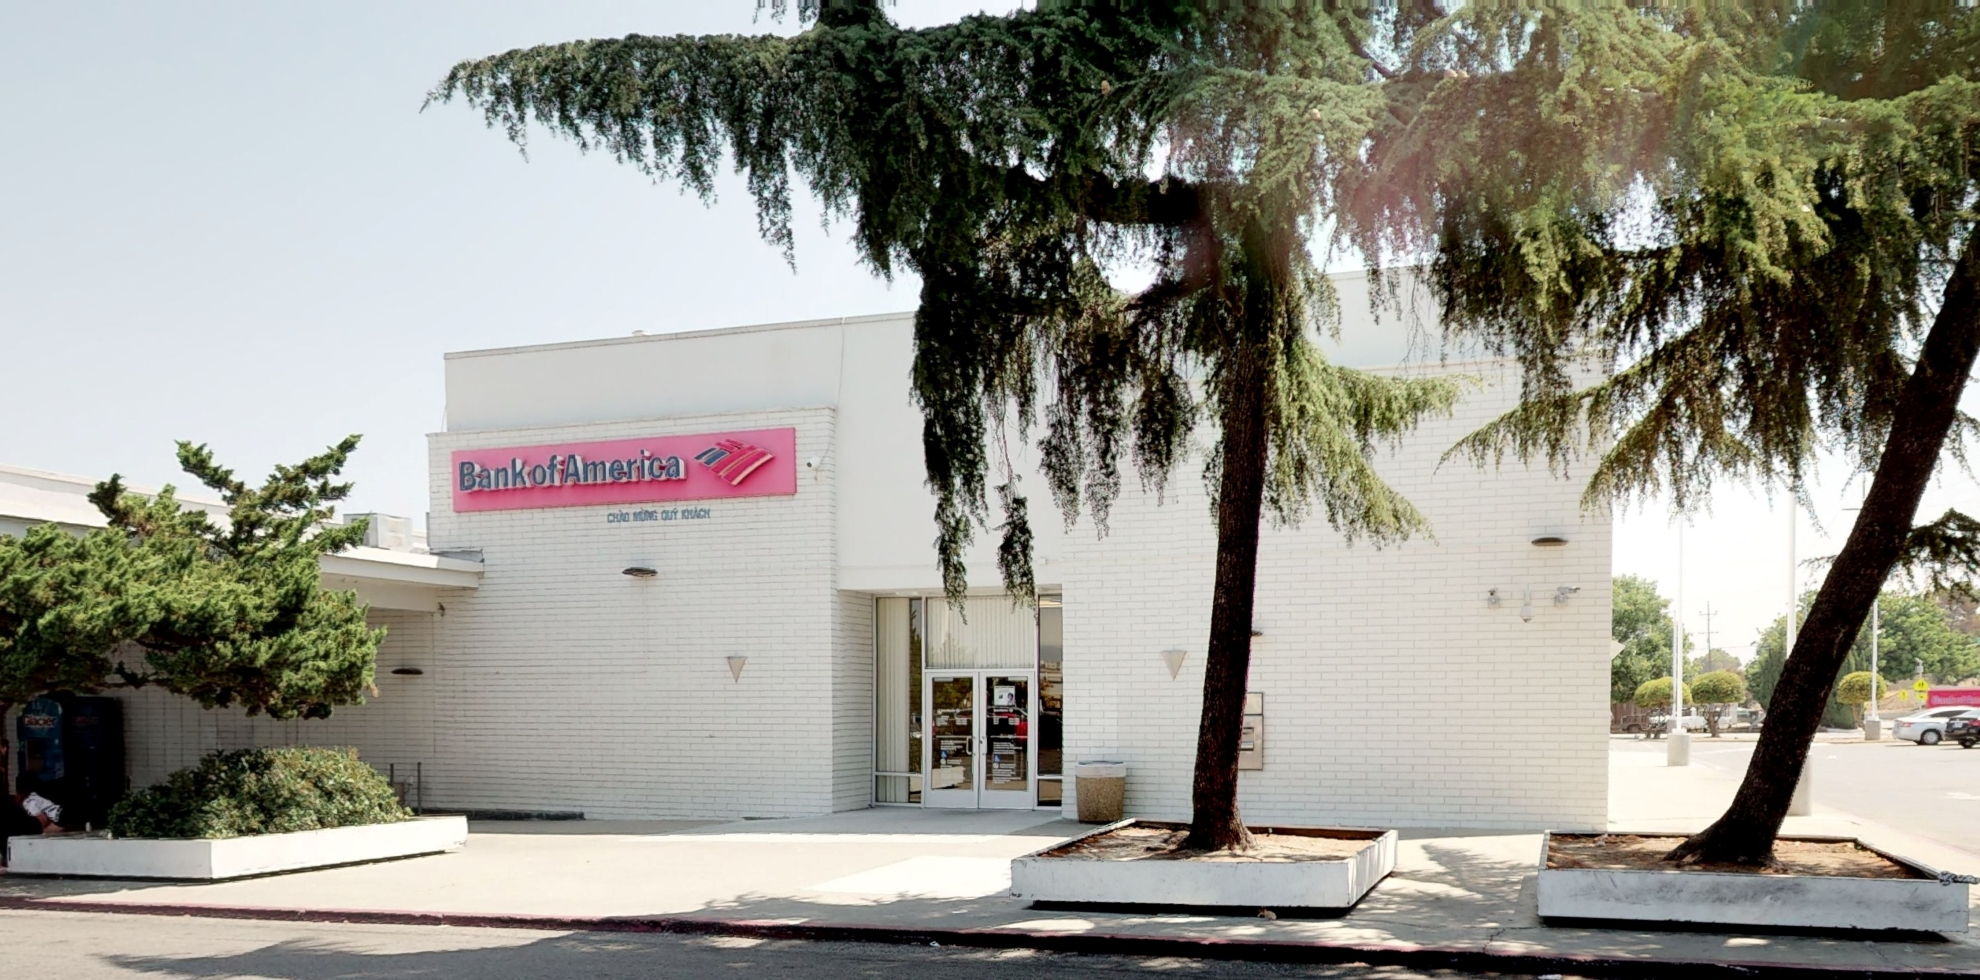 Bank of America financial center with walk-up ATM | 4150 Monterey Hwy, San Jose, CA 95111